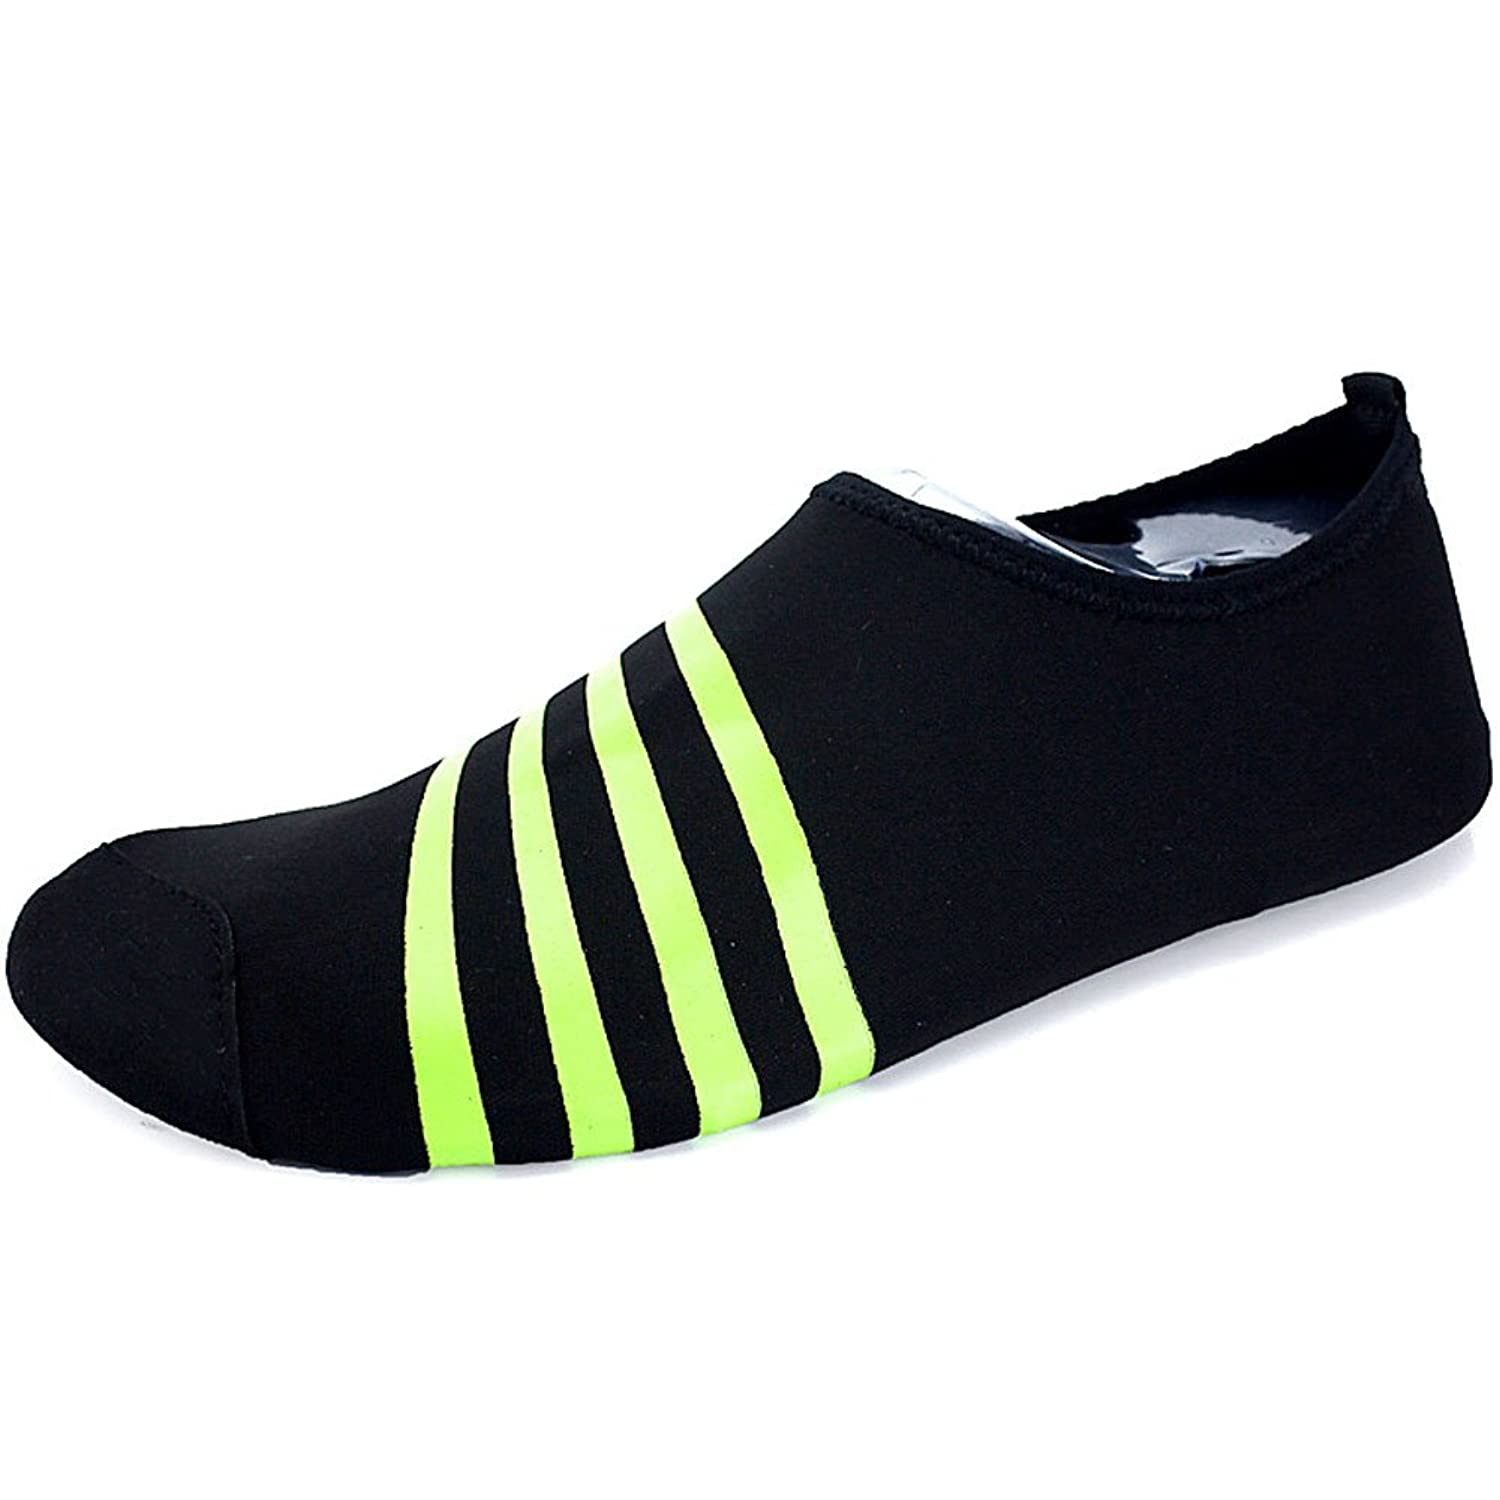 Aqua Sports Skin Socks Water Shoes Beach Yoga Fitness Running Fitness Pool GYM Multi Sport Shoes